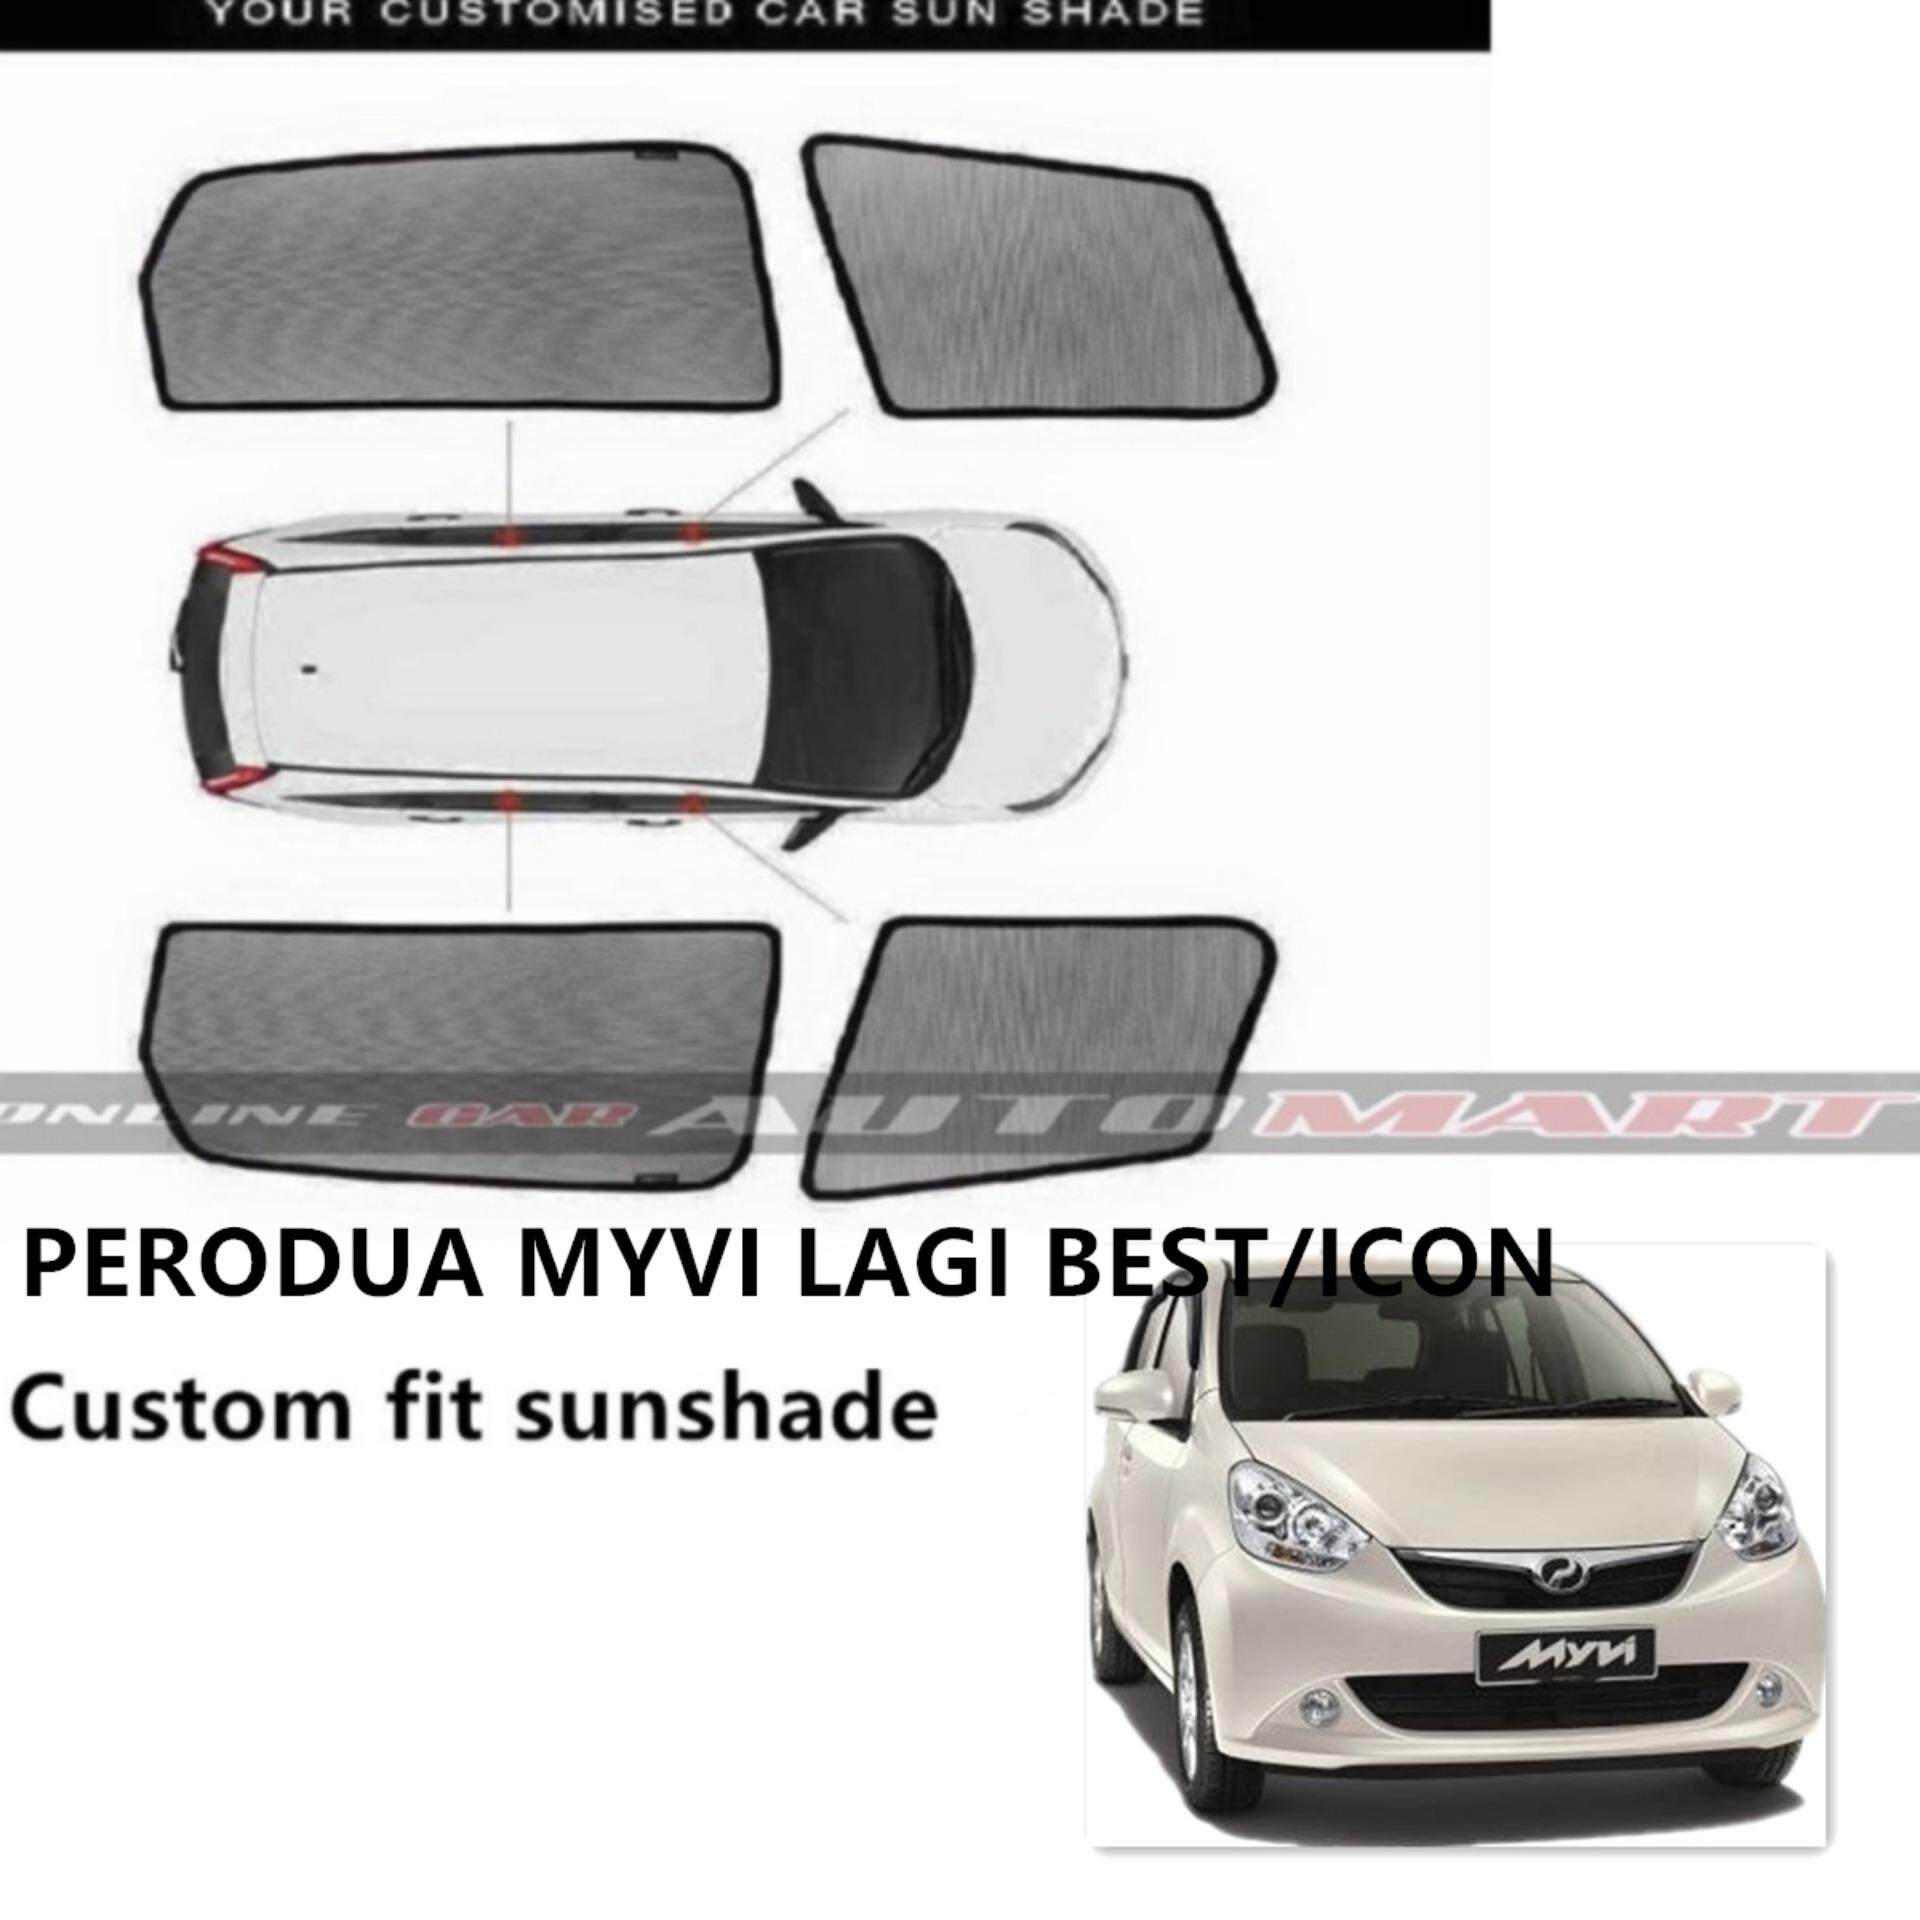 Custom Fit OEM Sunshades/ Sun Shades for MYVI Lagi Best & Icon - 4 Pcs